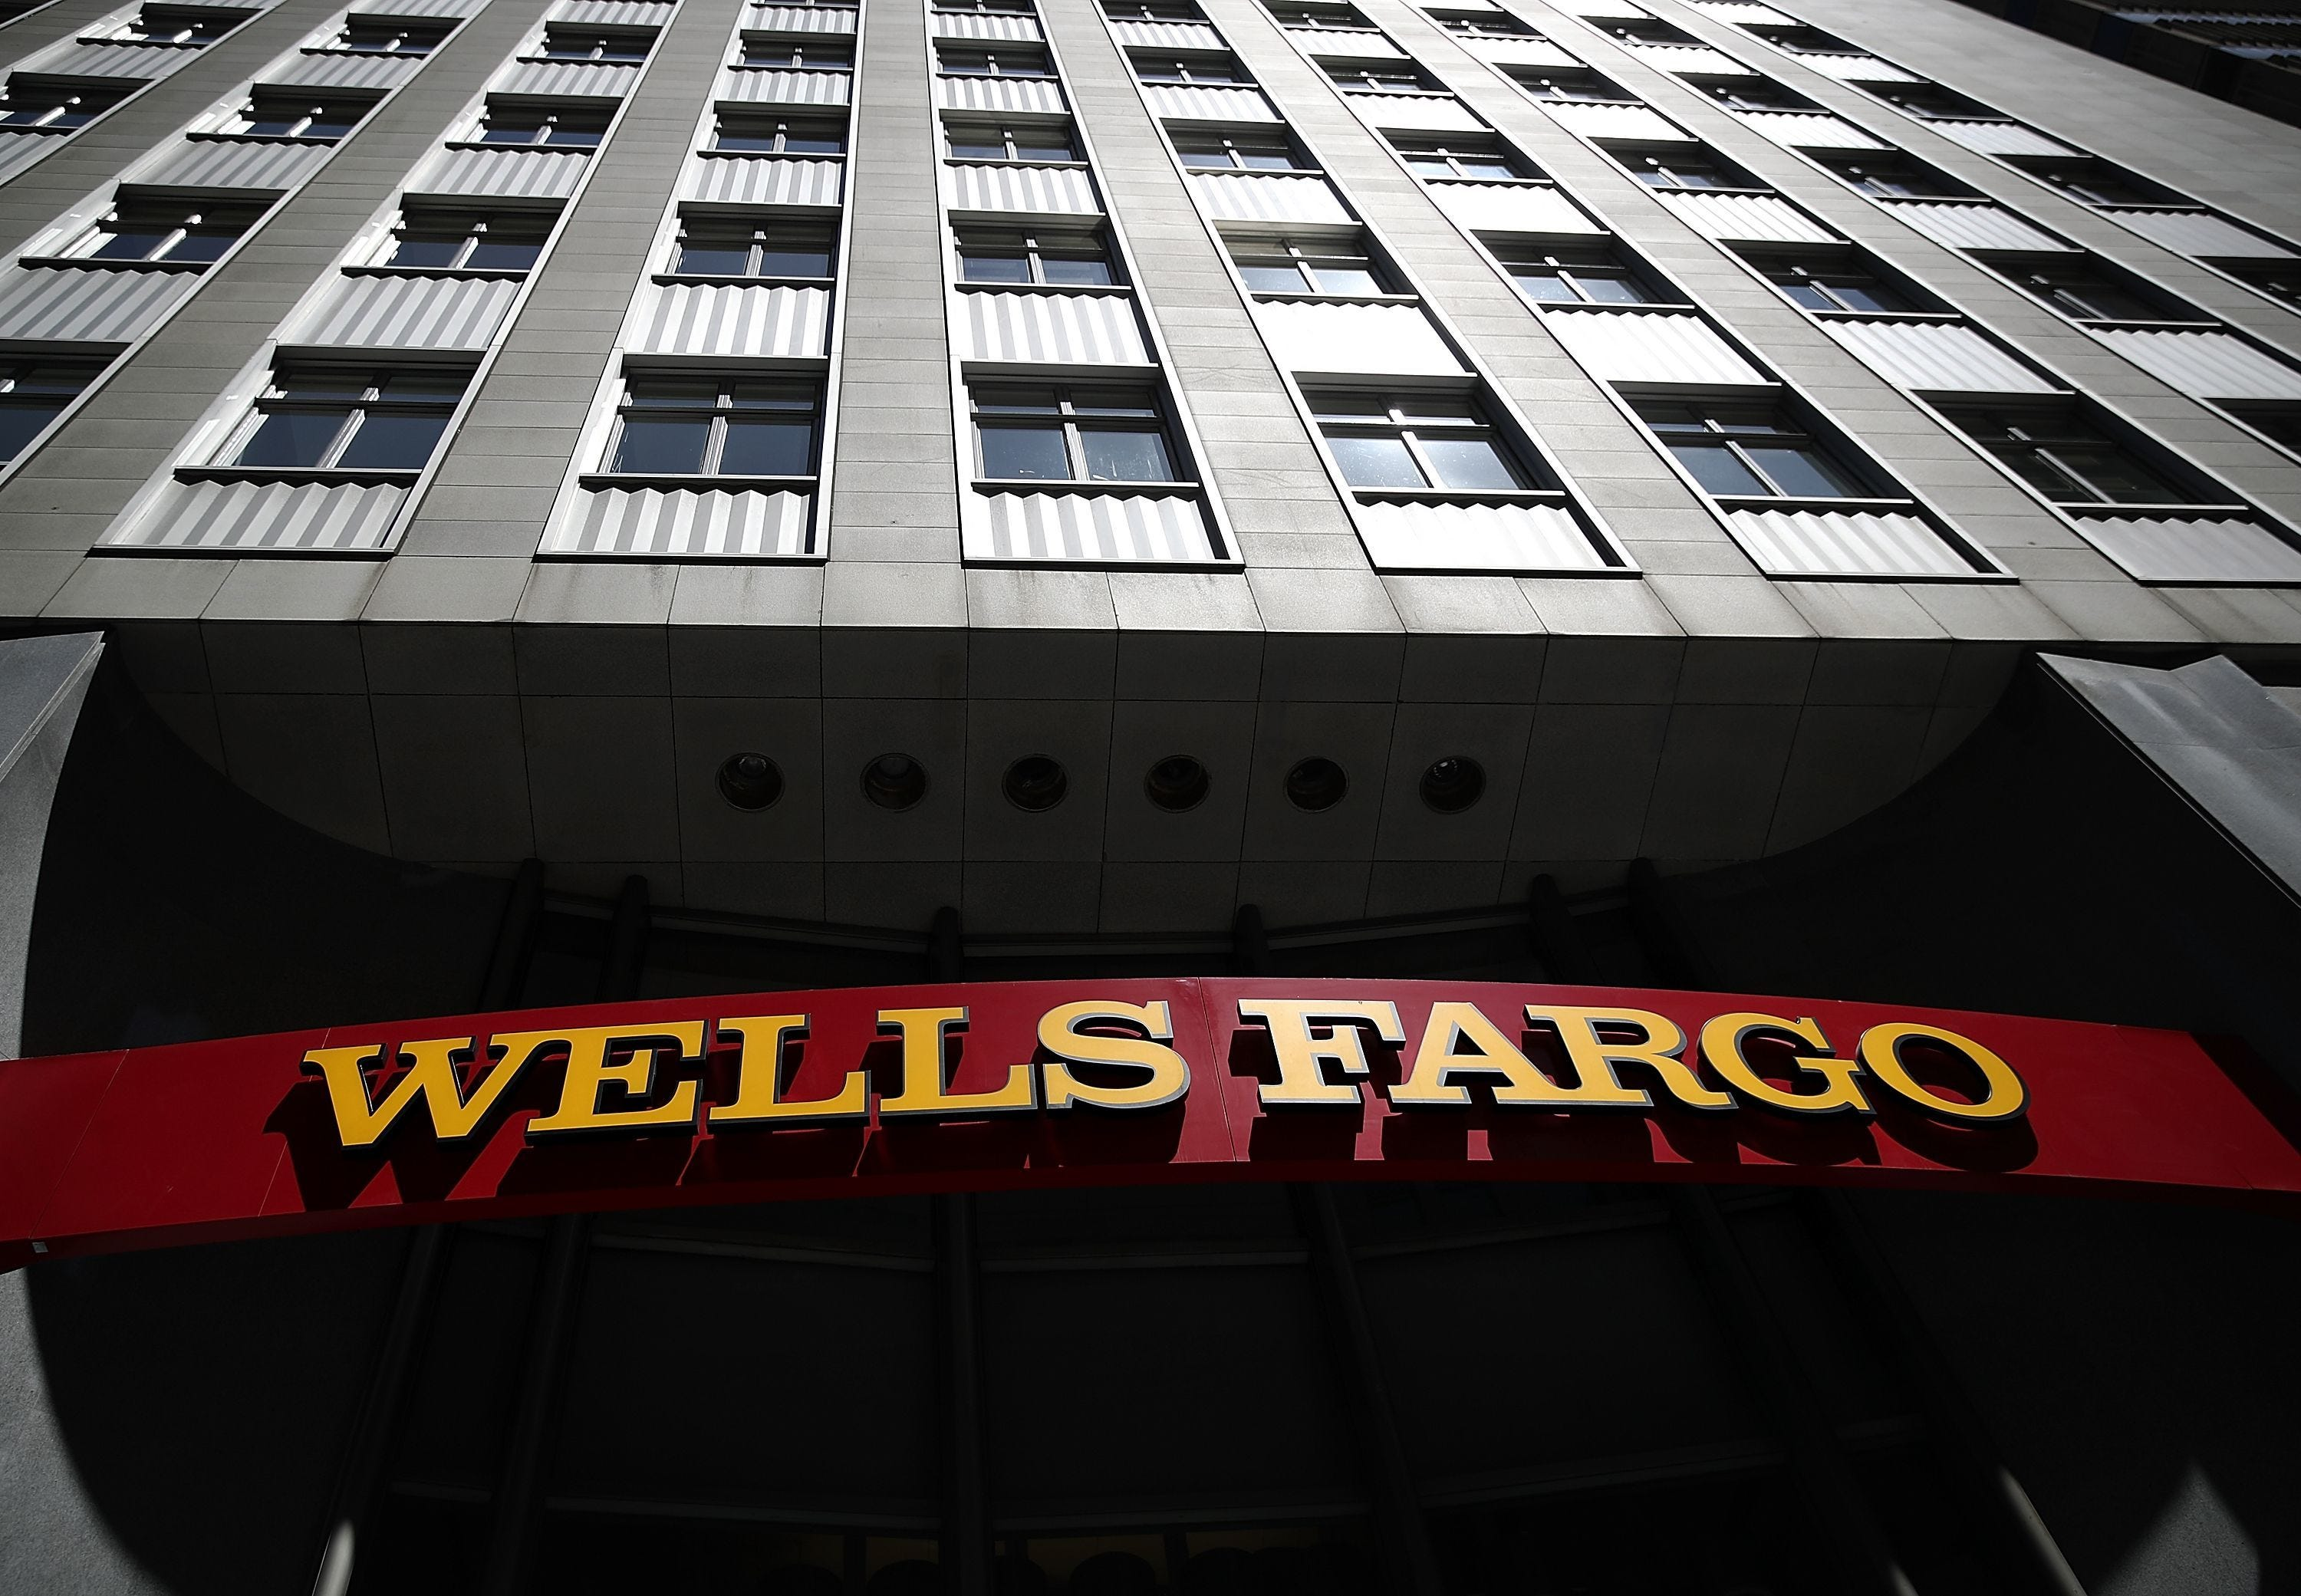 Exclusive: Wells Fargo loses teachers union AFT over ties to NRA, guns